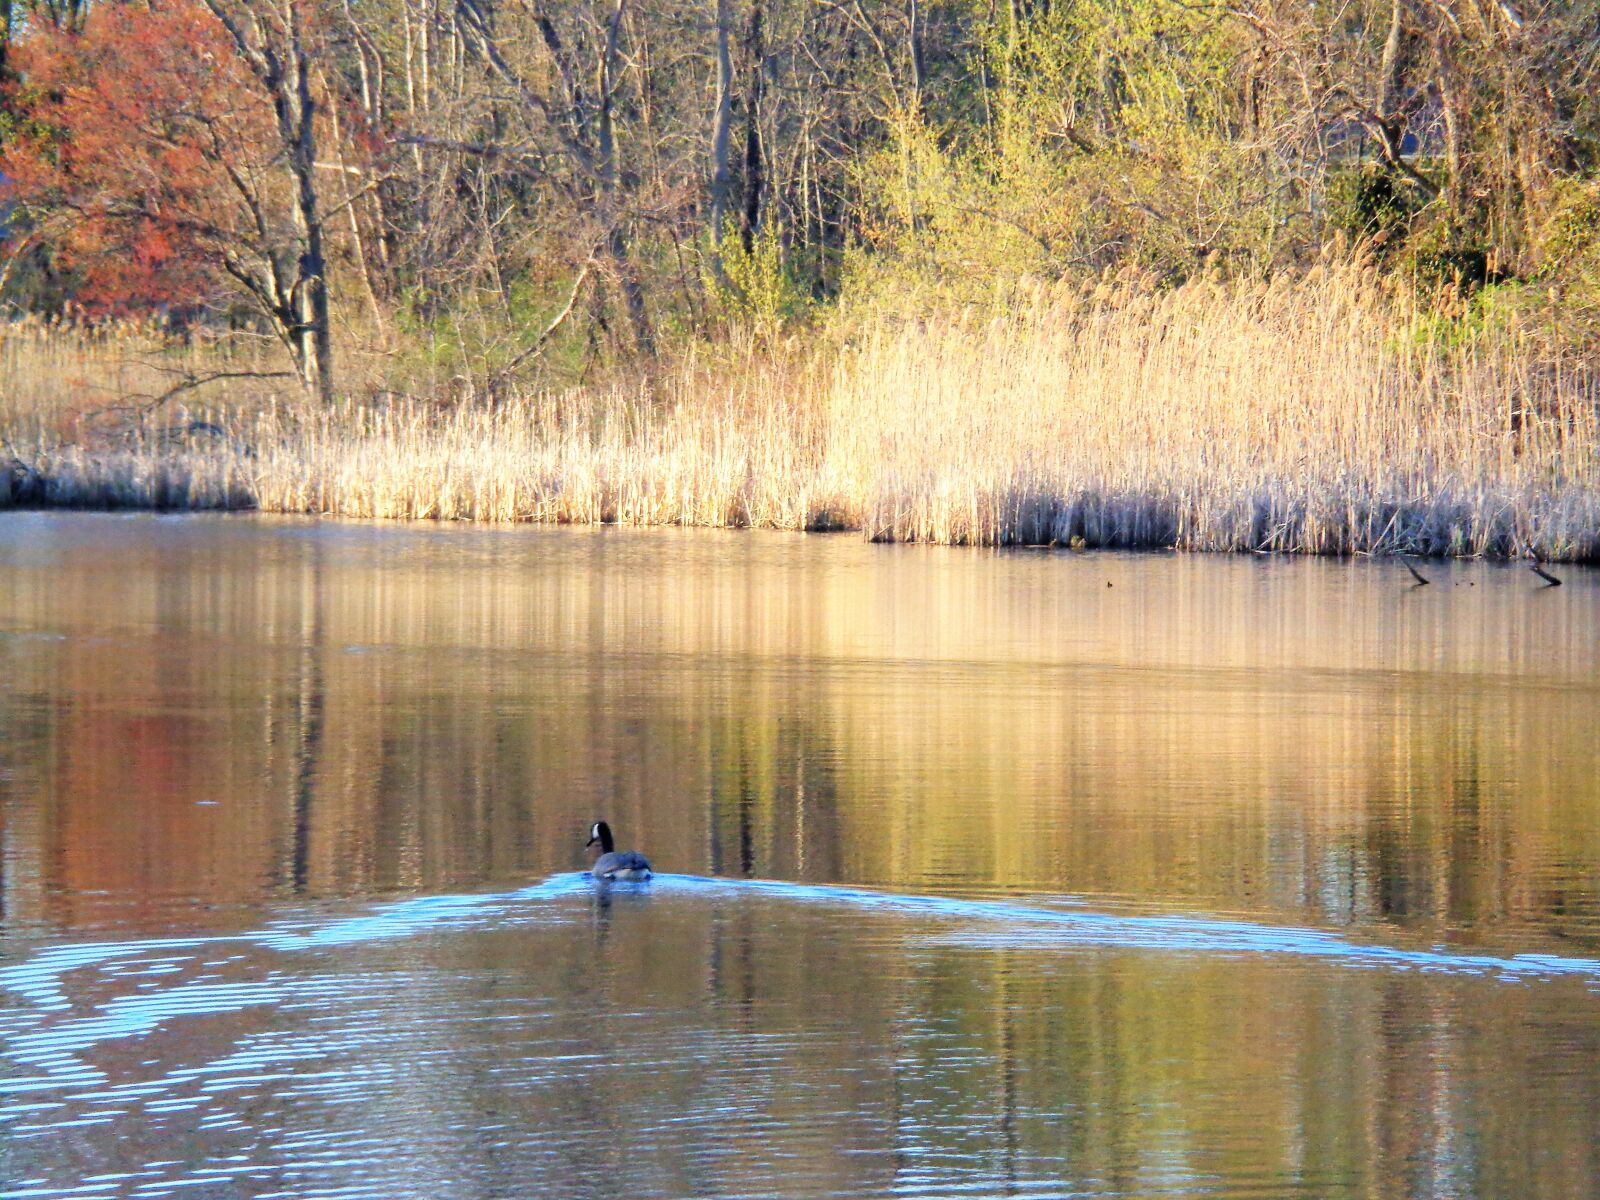 """Sony DSC-W690 sample photo. """"Goose, water, autumn"""" photography"""